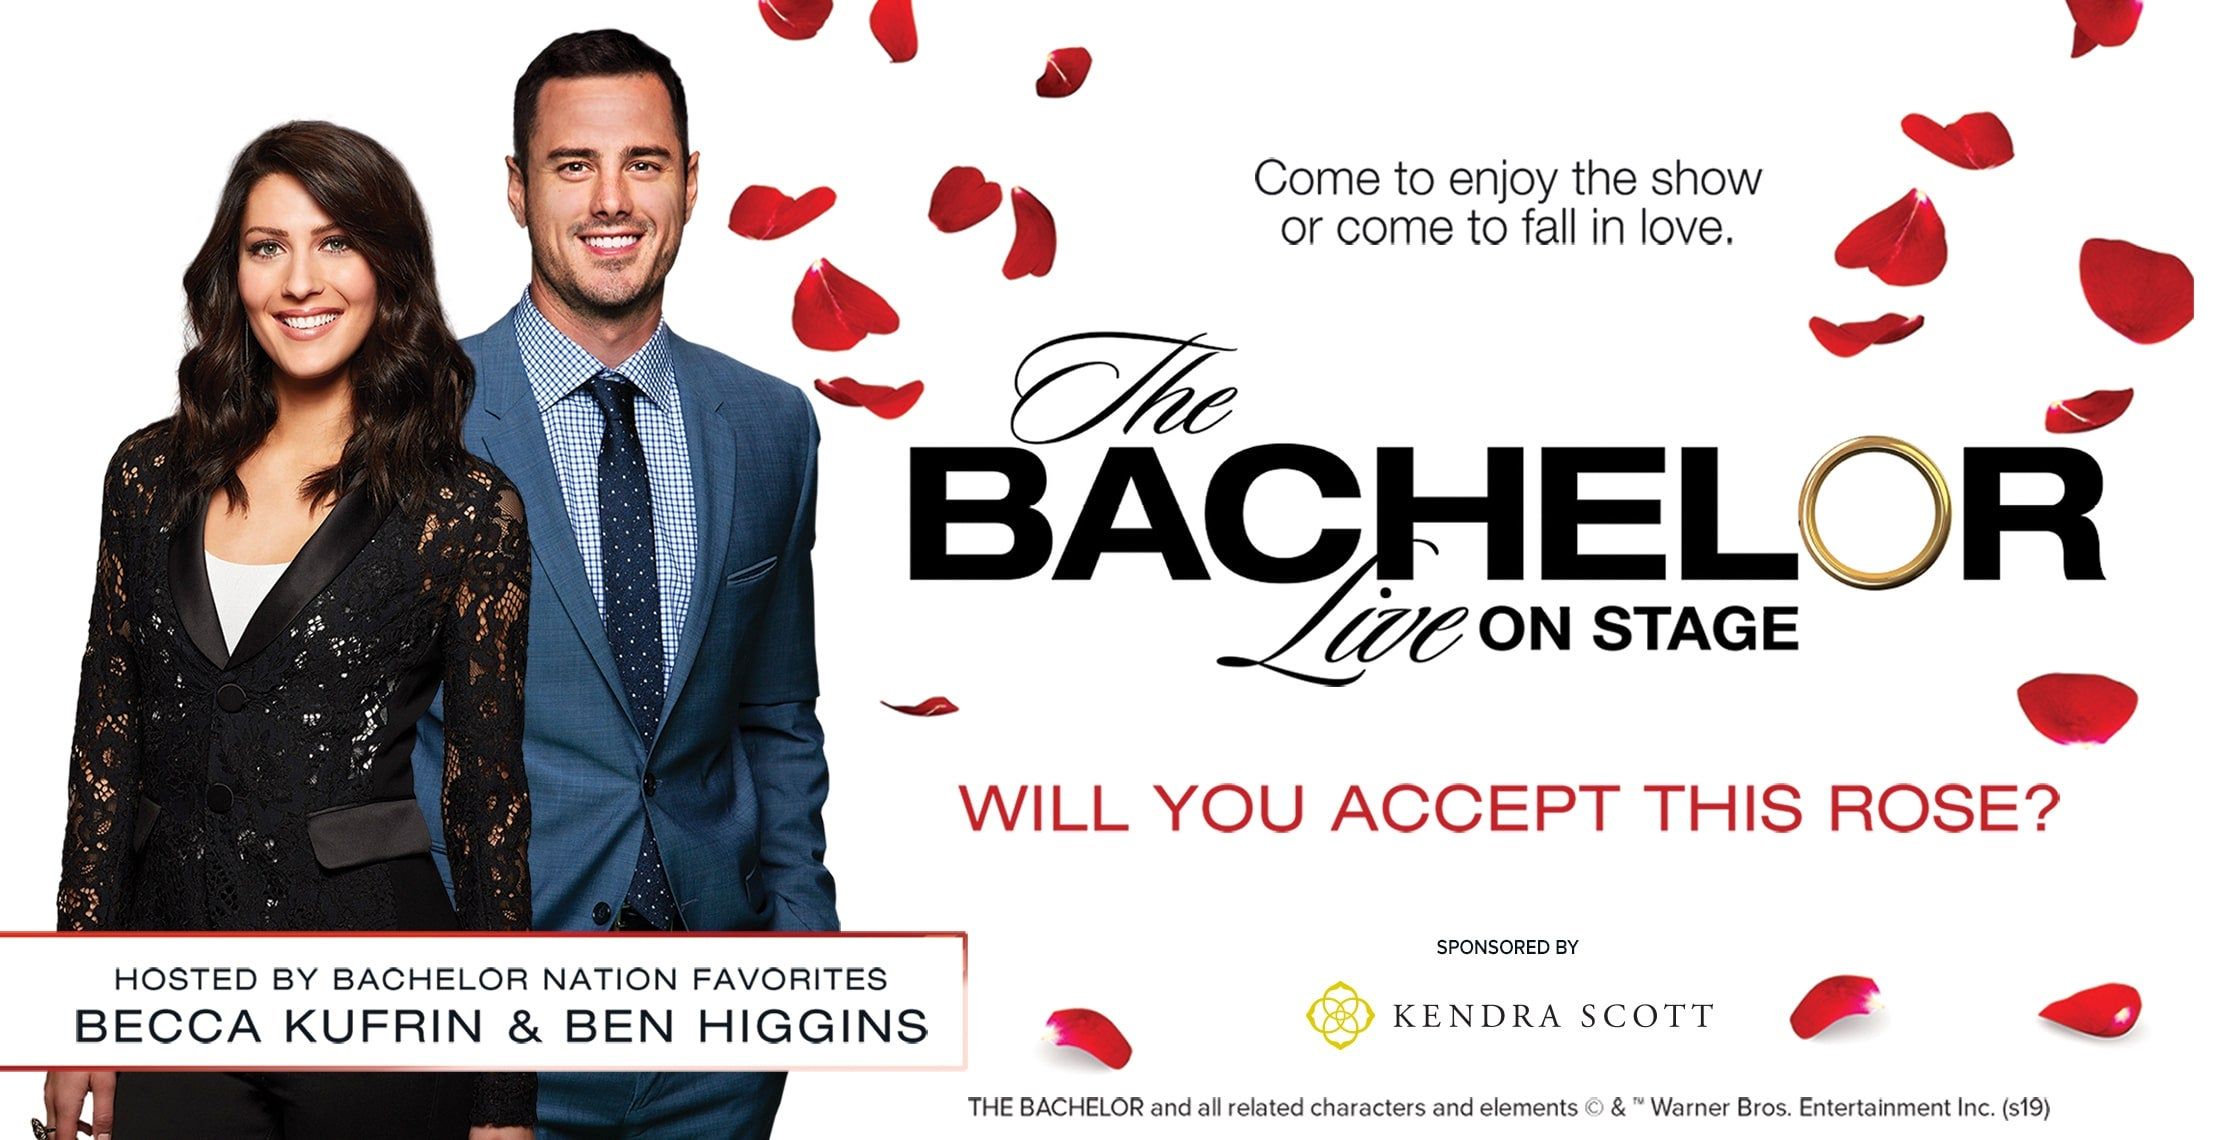 POSTPONED - The Bachelor Live On Stage